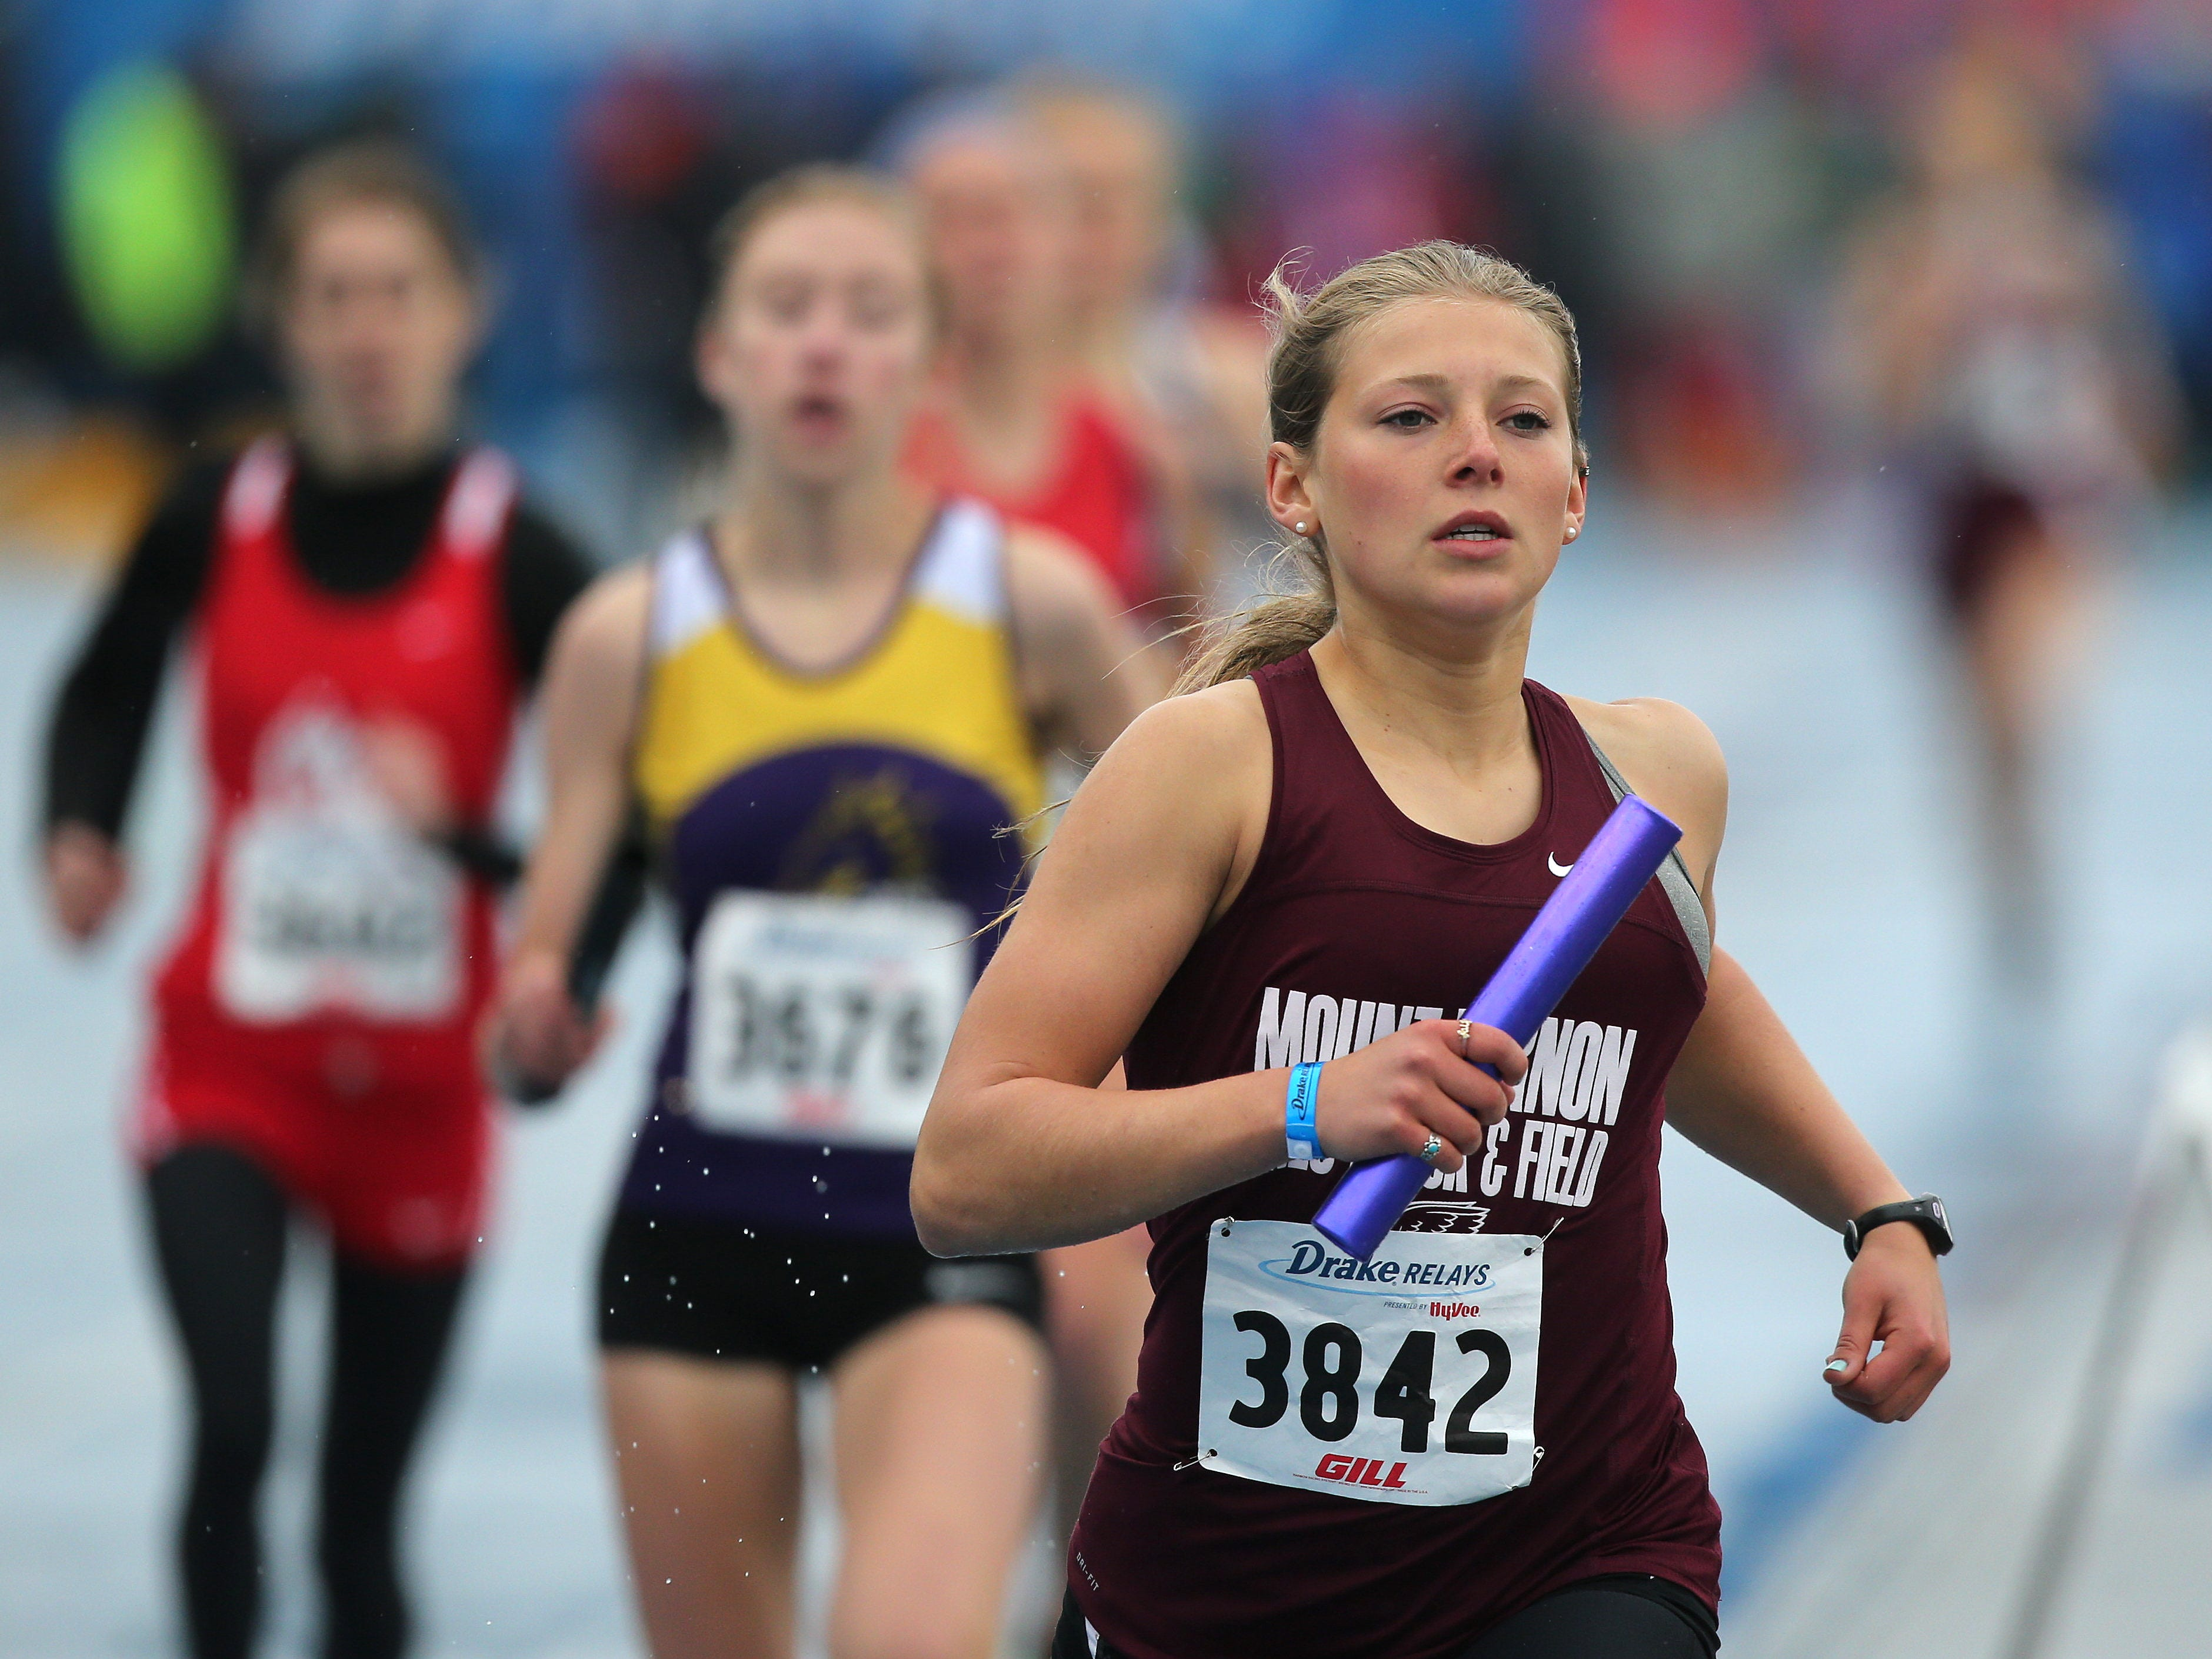 Mount Vernon sophomore Faith Anton runs the baton in the girls 4x800 meter relay during the Drake Relays at Drake Stadium in Des Moines on Saturday, April 25, 2015. Davenport Assumption's Mallory King took the lead from Waukee in the third leg and Joy Ripslinger extended it for a win in 9:20.99, ahead of last year's 9:23.78 victory.